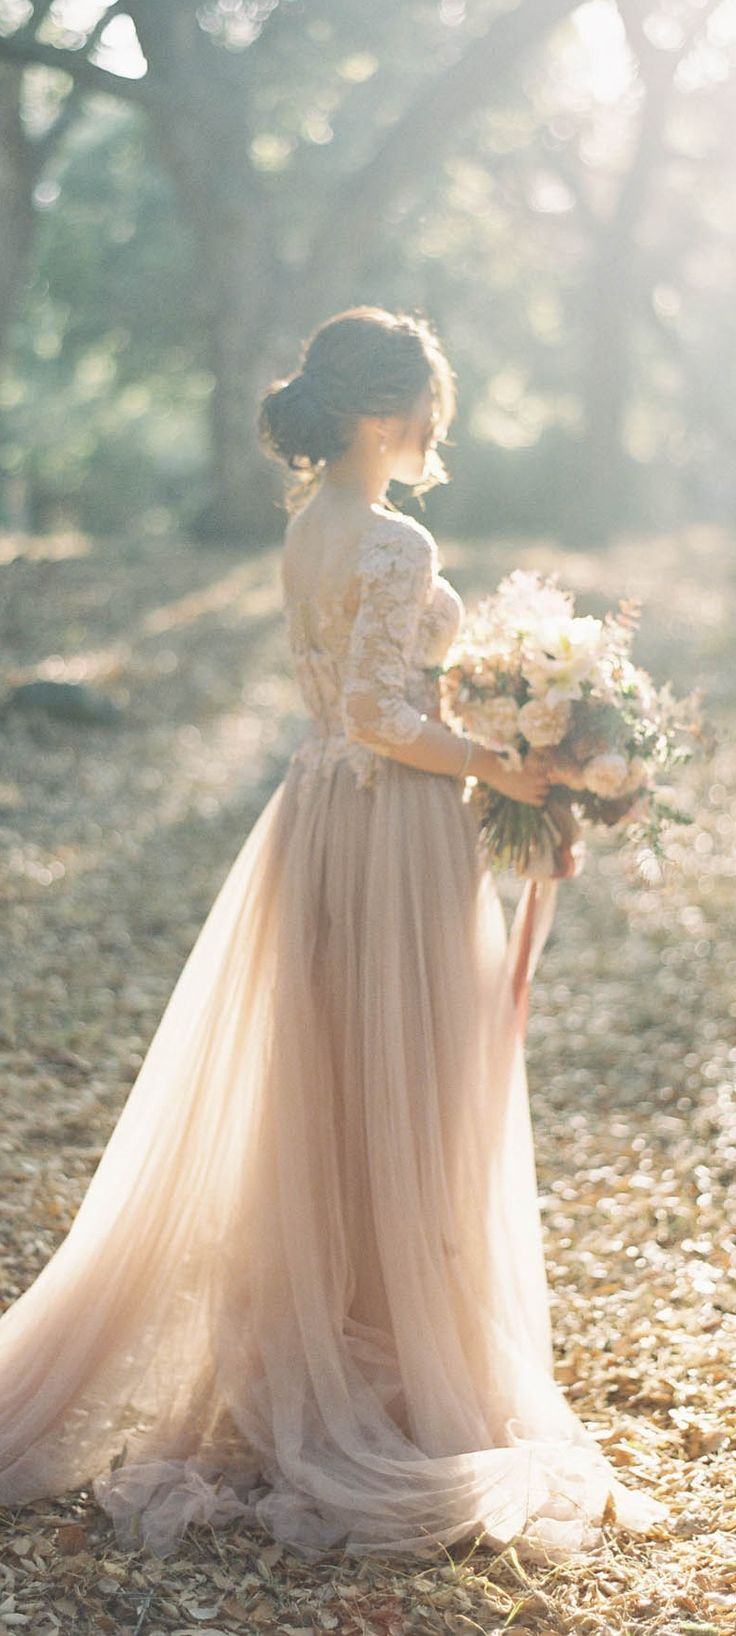 This beige wedding dress is magical.